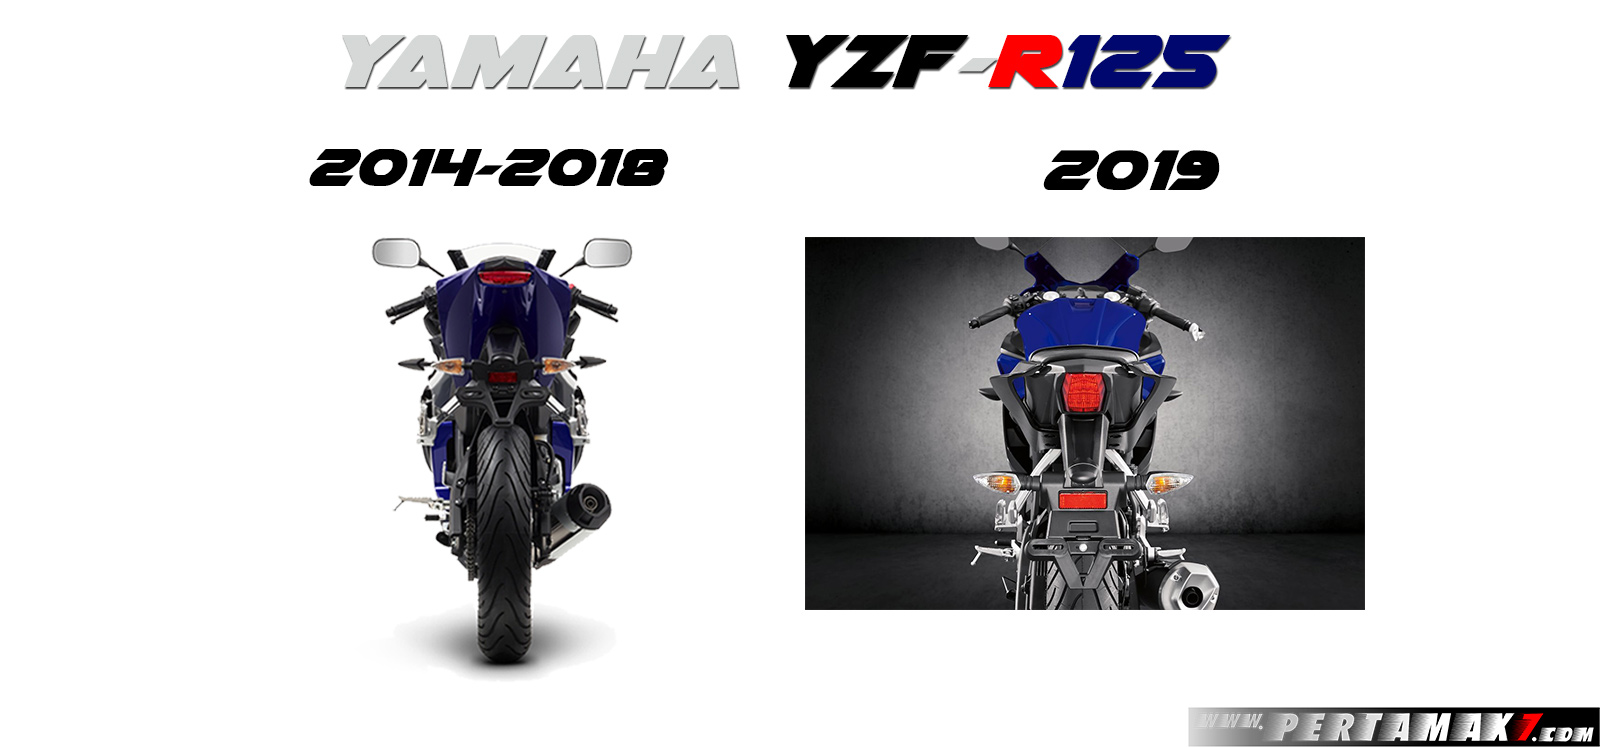 Yamaha R125 MY2014 VS R125 MY2019 Rear View